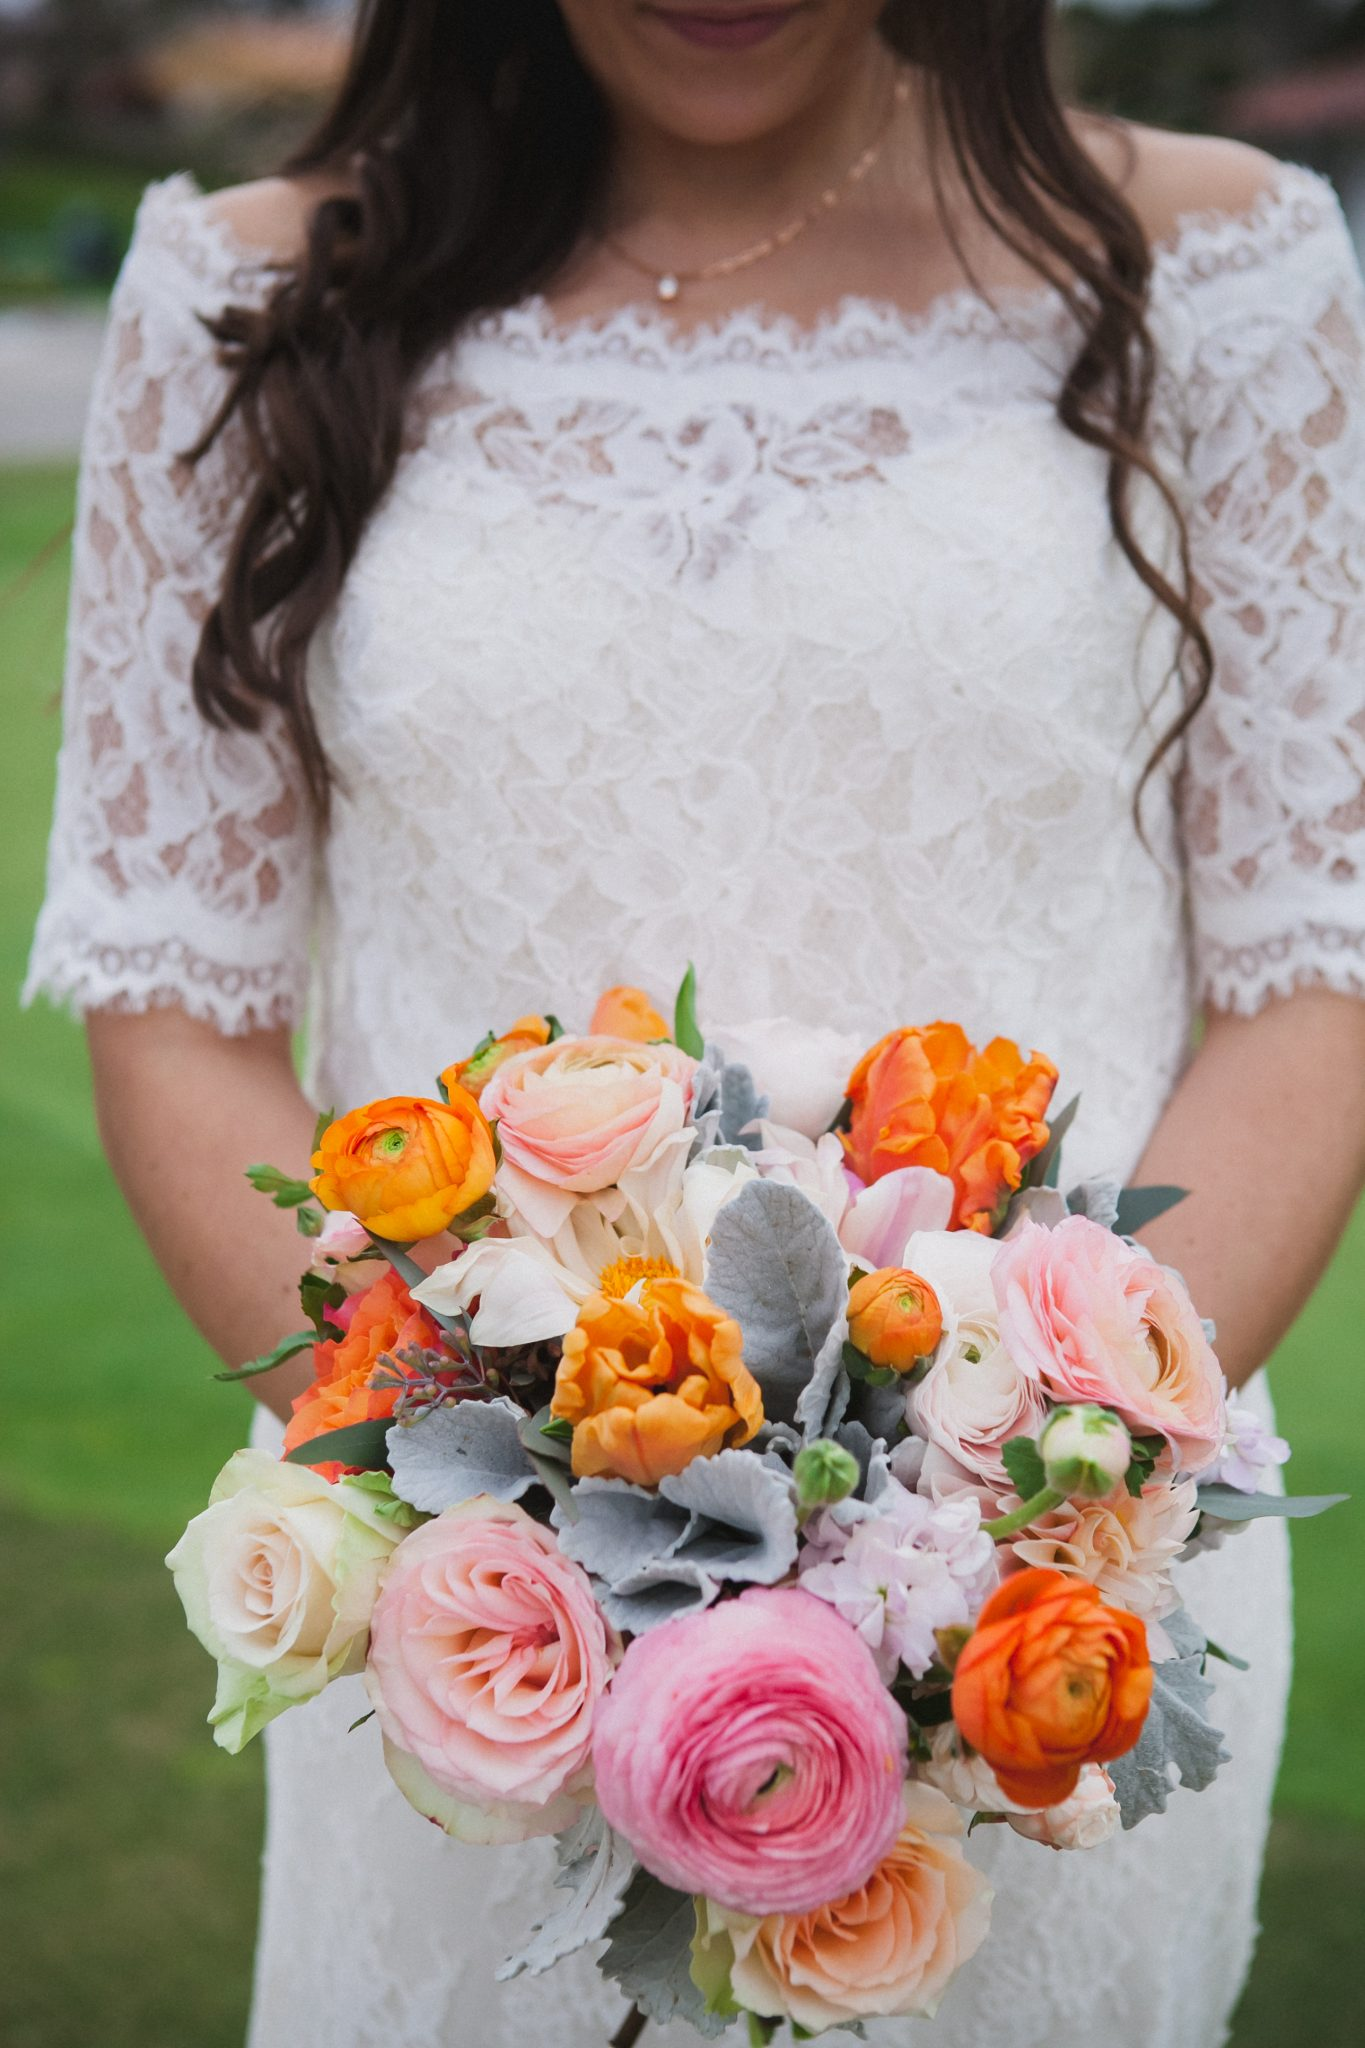 Detail shot of the bride's pink and orange flowers